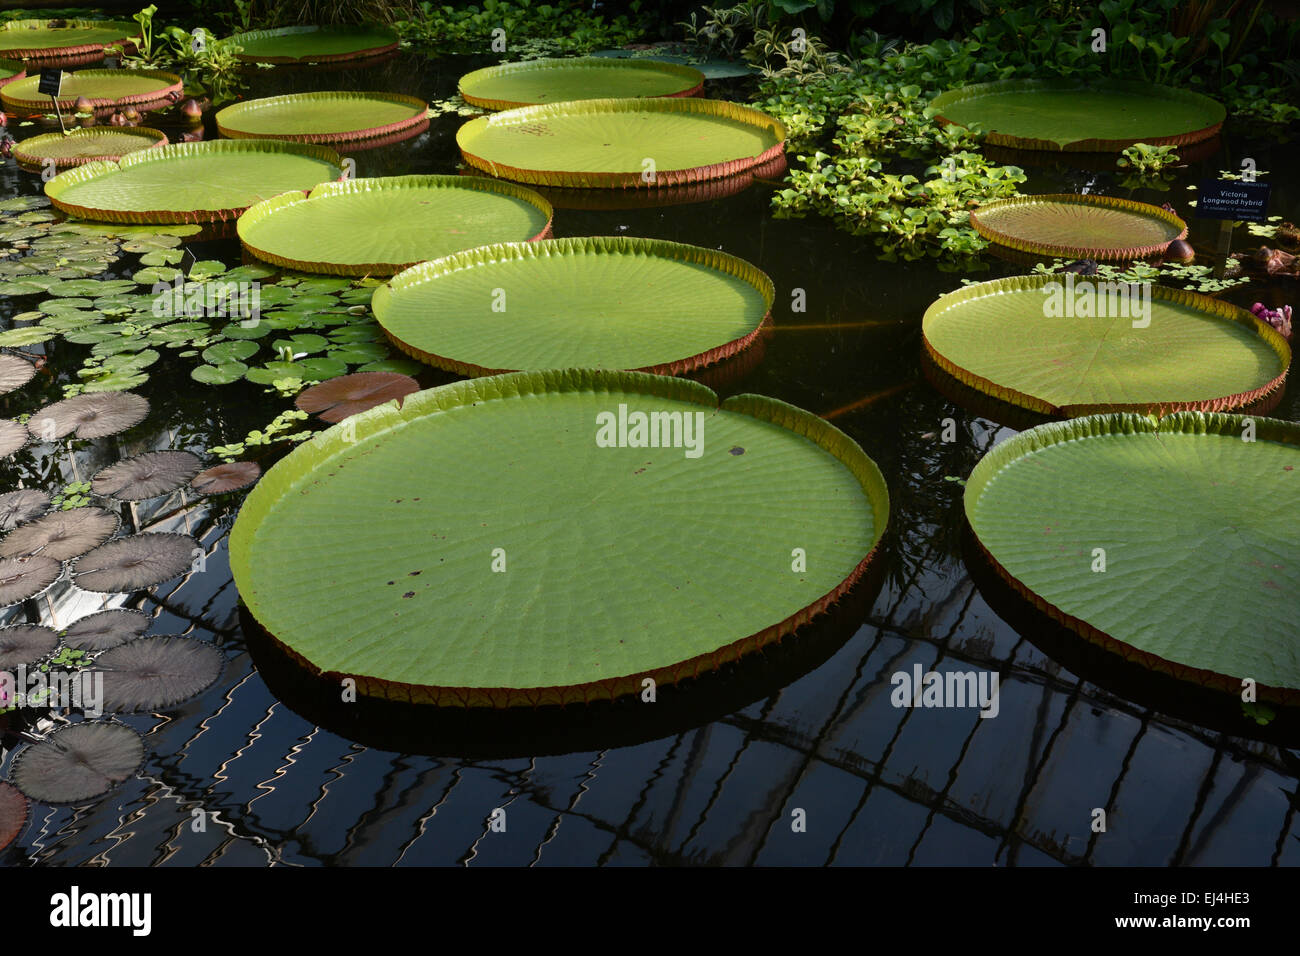 Water lilies - Stock Image